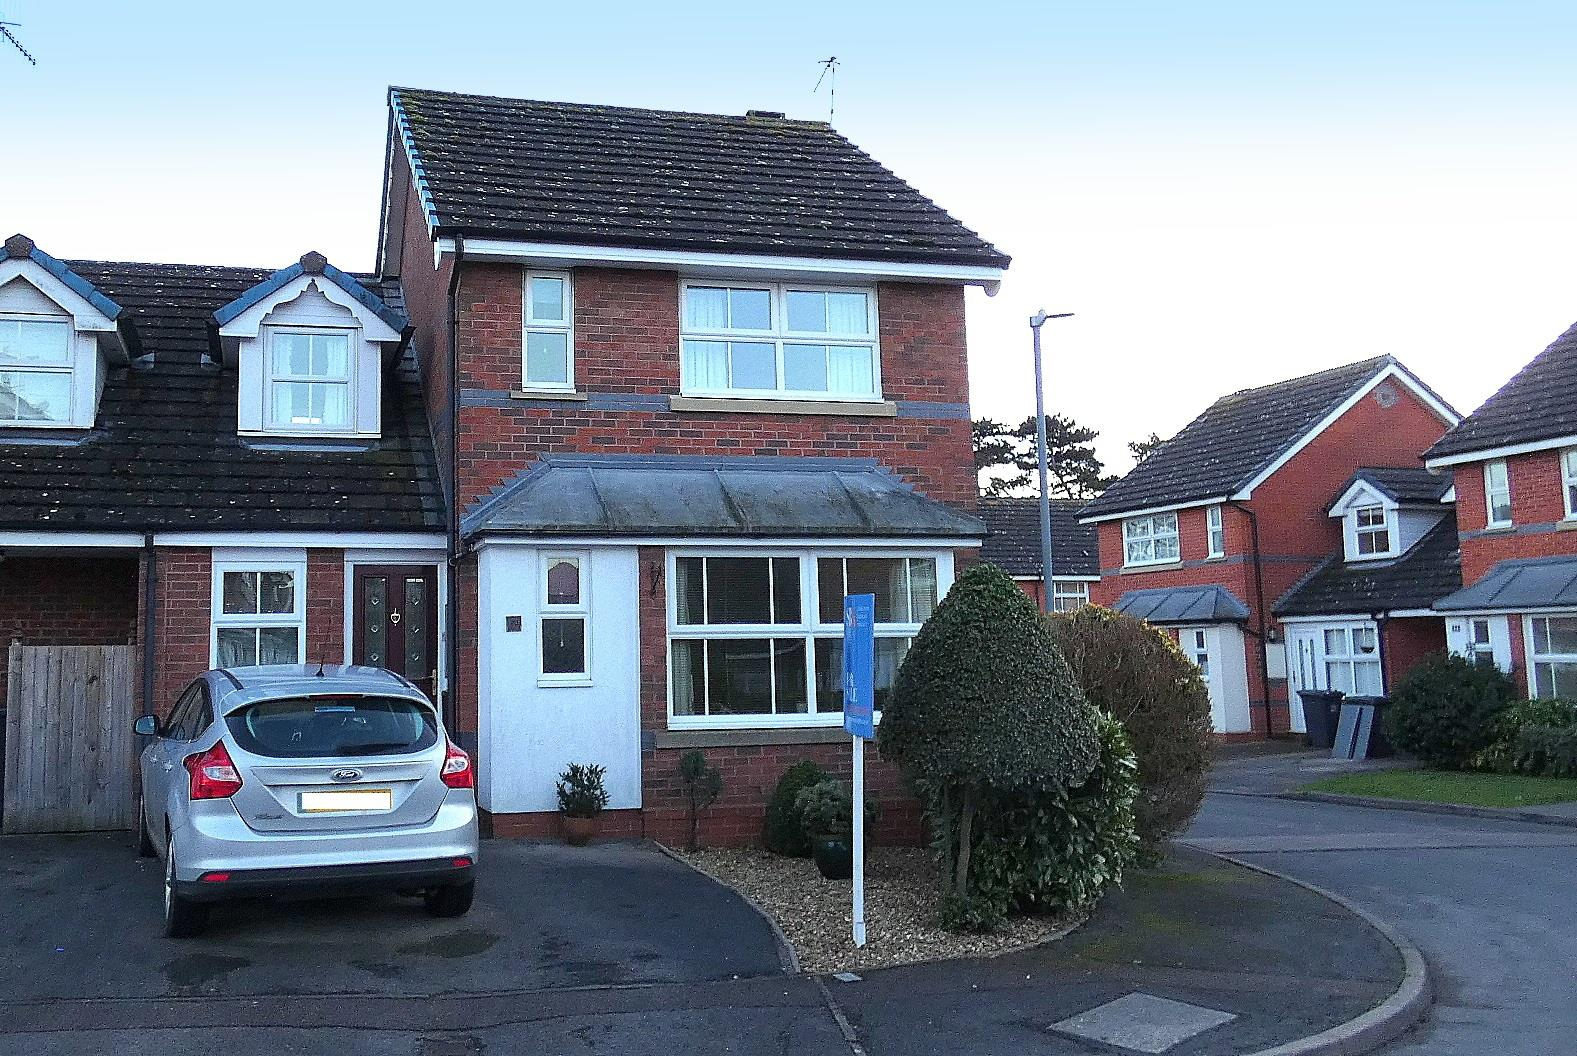 3 Bedrooms End Of Terrace House for sale in Ascot Close, Stratford-Upon-Avon